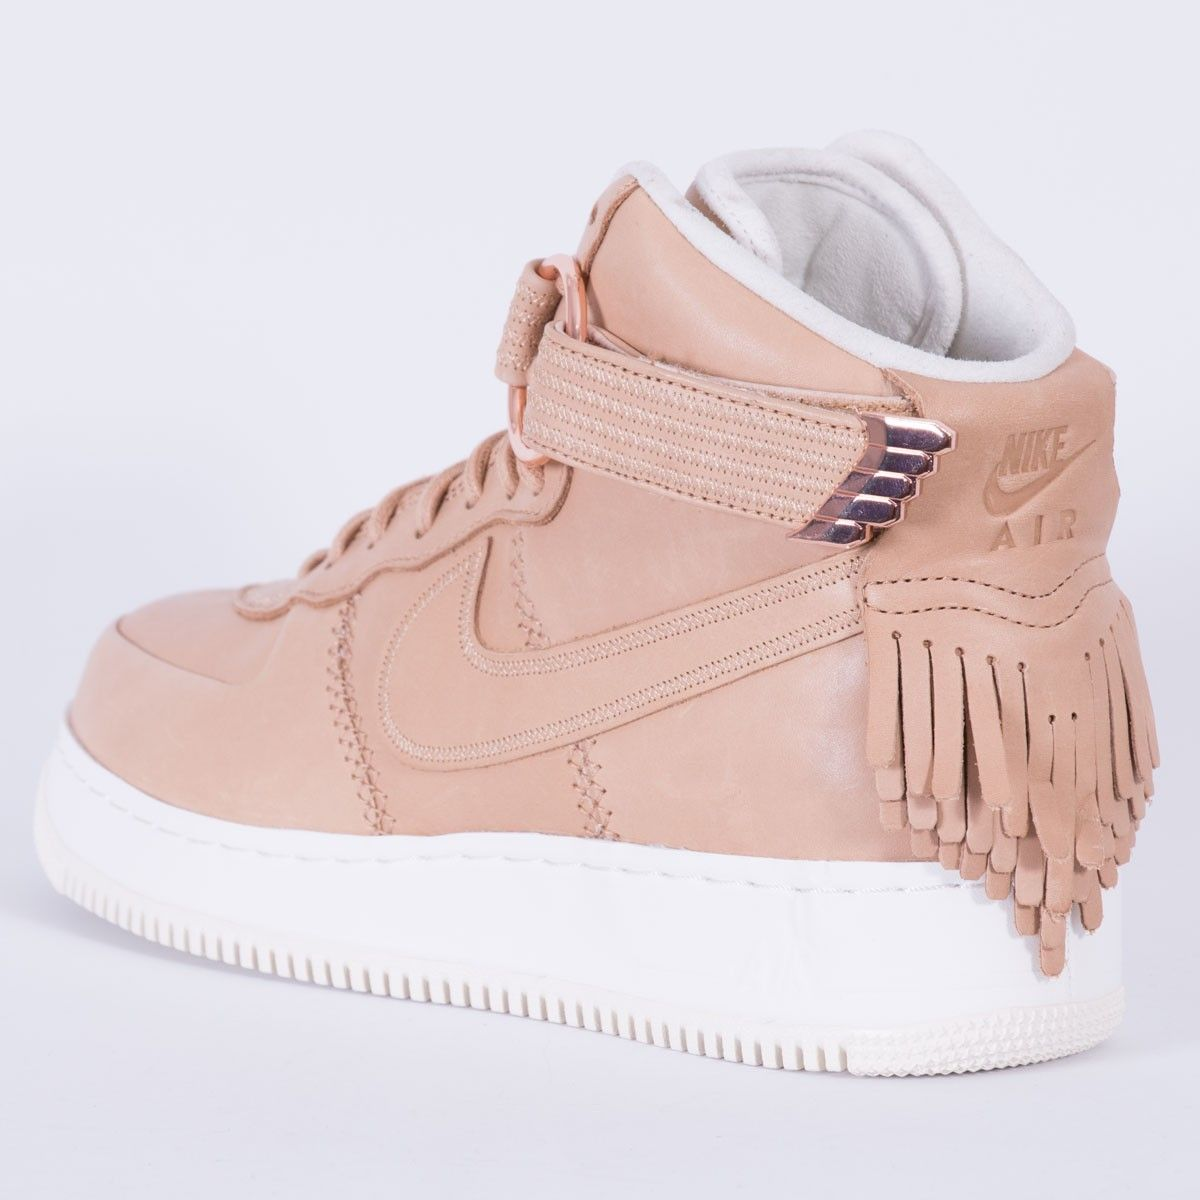 Nike Air Force 1 High SL '5 Decades Of Basketball' Vachetta Tan 919473-